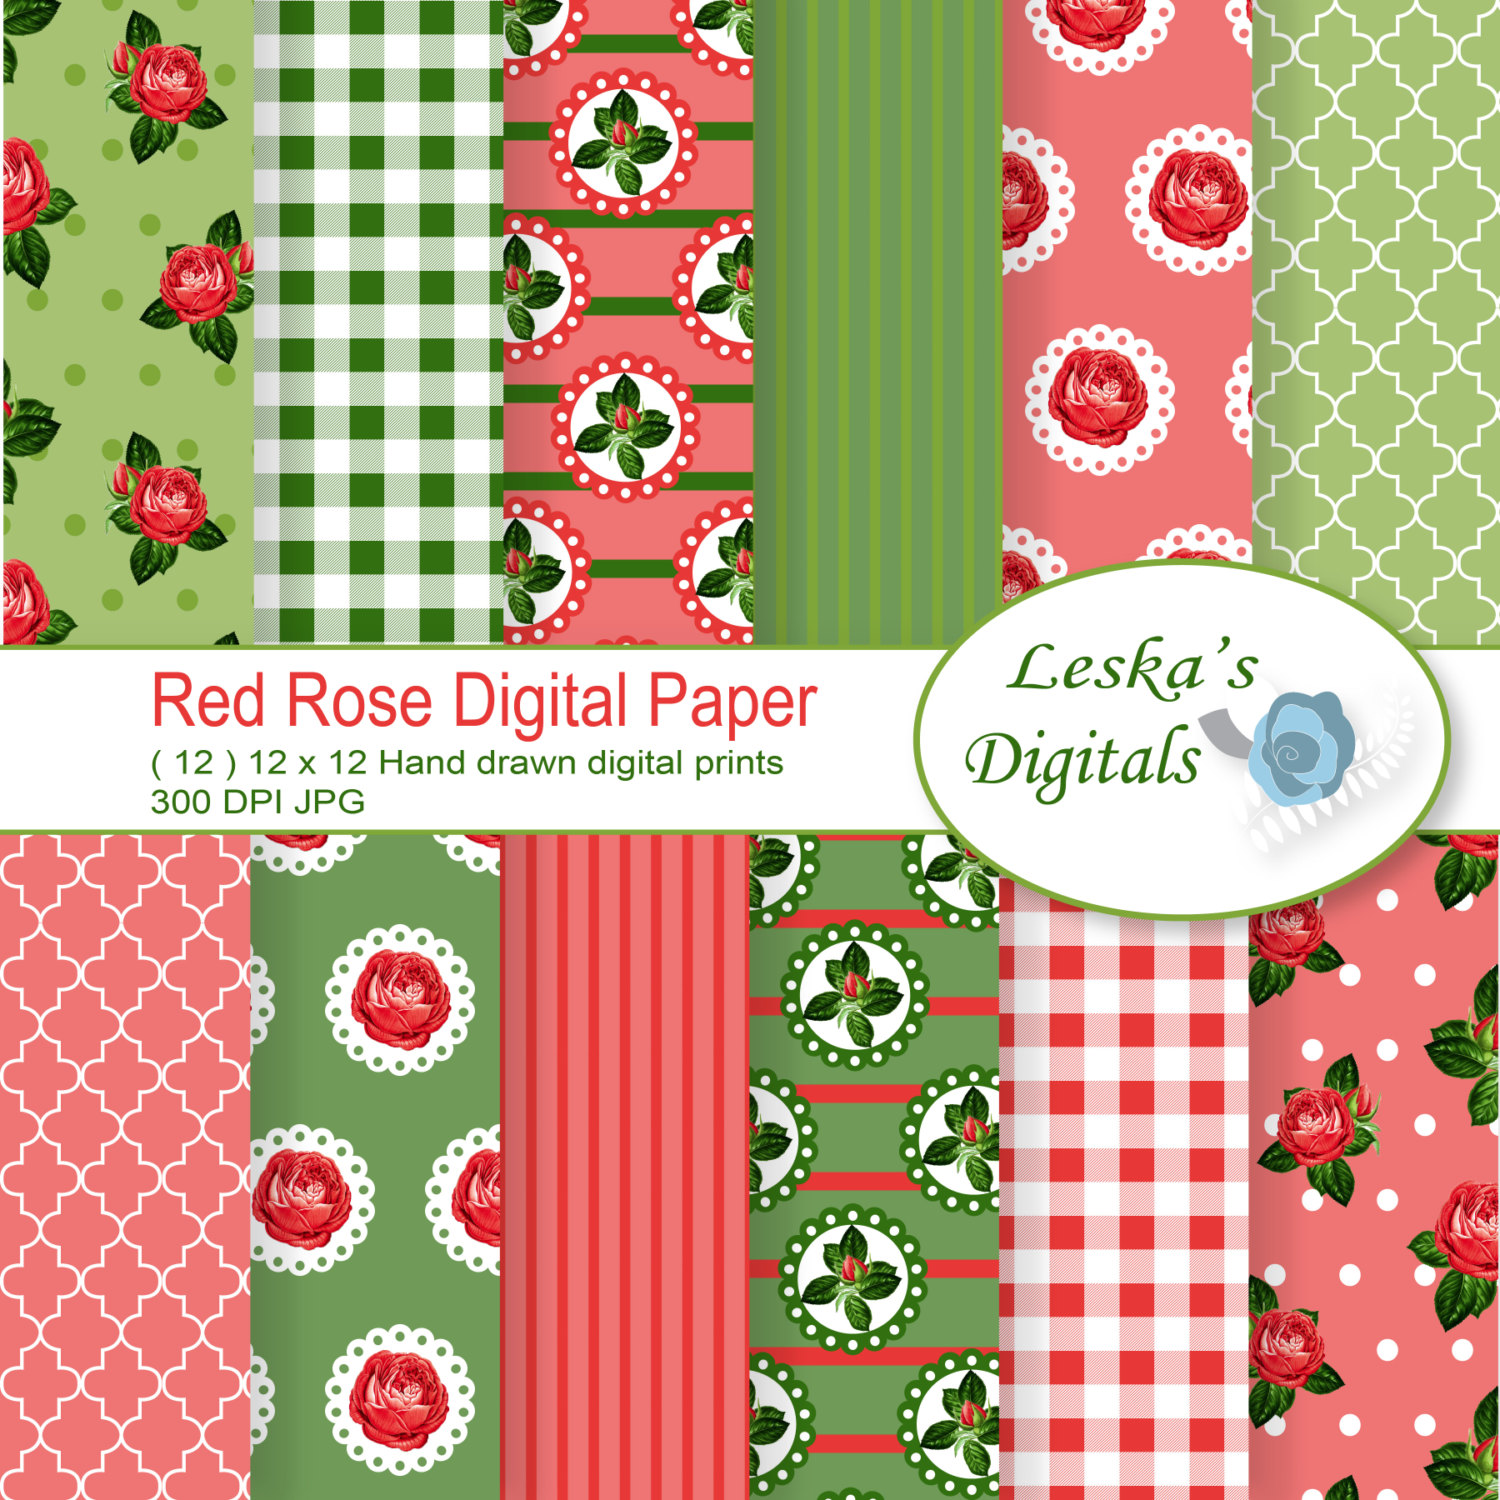 Drawn red rose digital Is Digital Shabby garden cottage